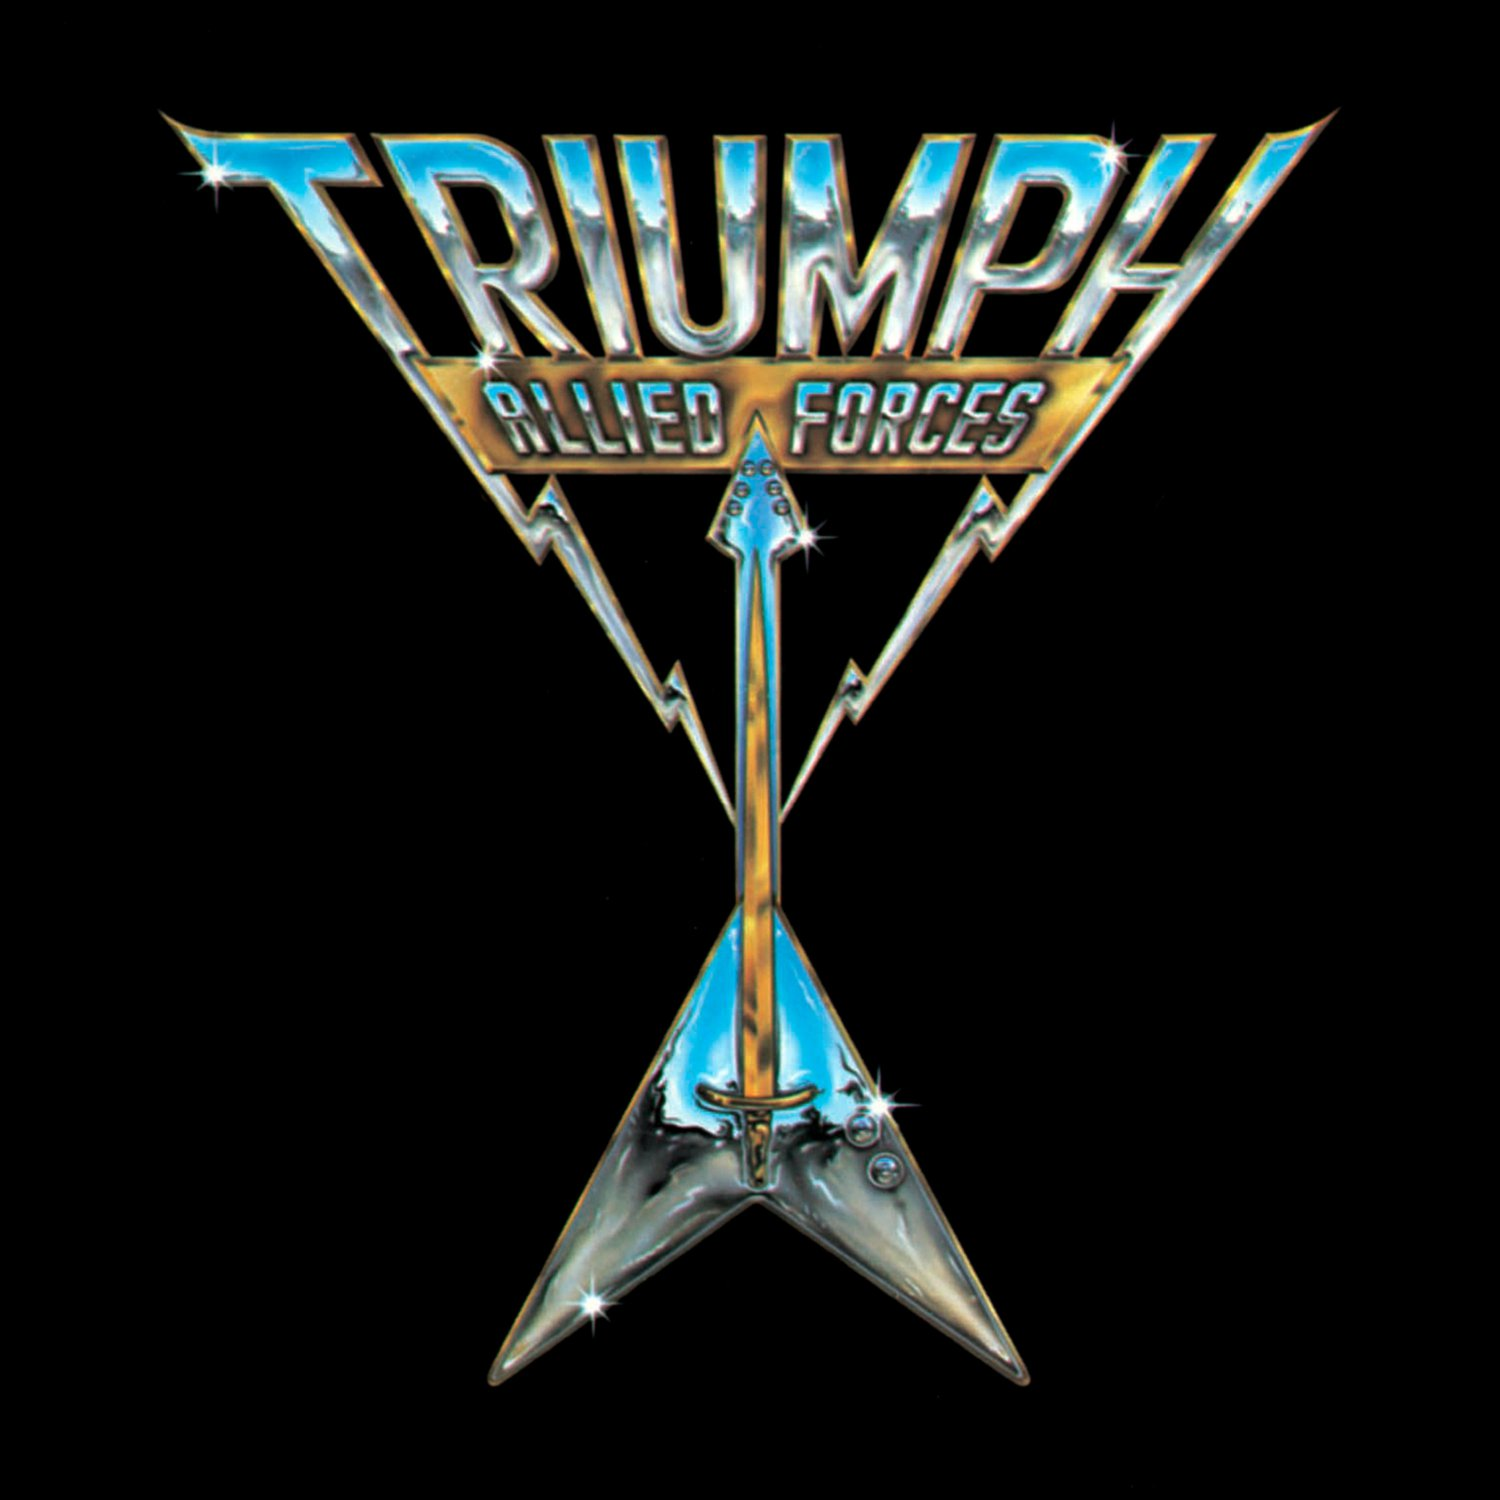 TRIUMPH Allied Forces BANNER Huge 4X4 Ft Fabric Poster Tapestry Flag Print album cover art